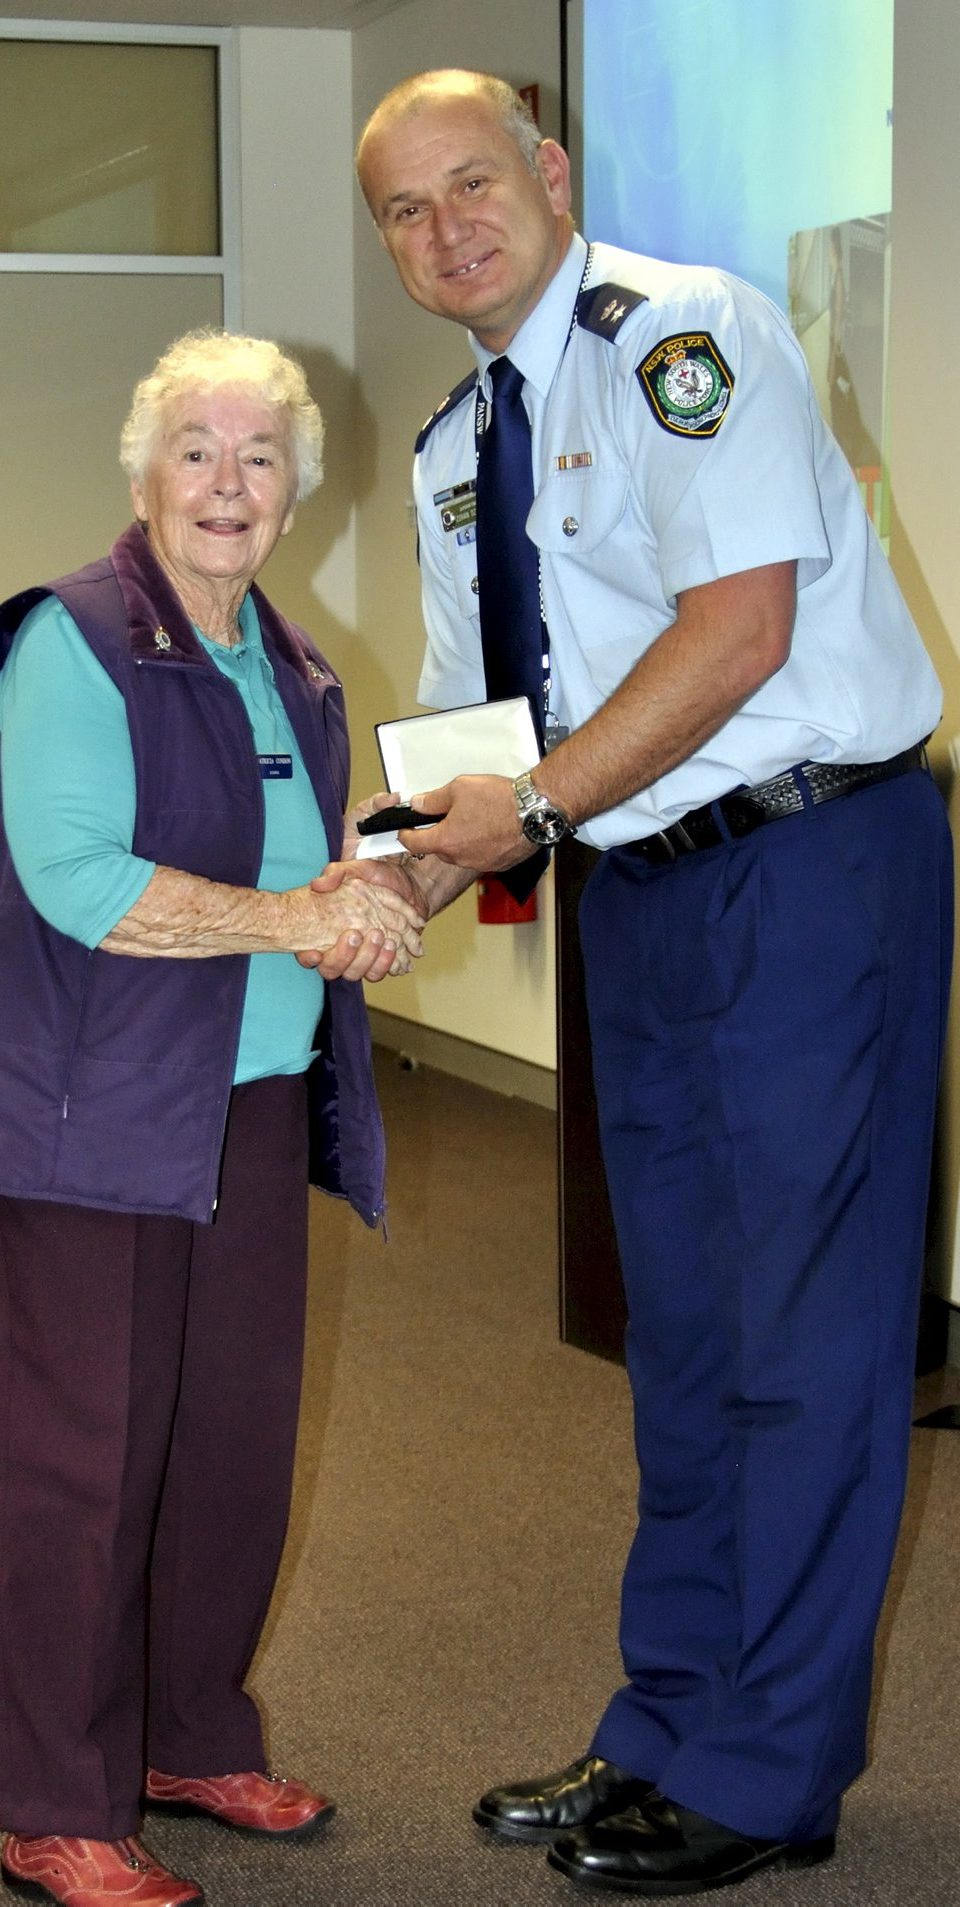 Pat CONDON receiving Gabriel ( Gab ) CONDON's Medal - RIP. https://www.australianpolice.com.au/gabriel-condon/